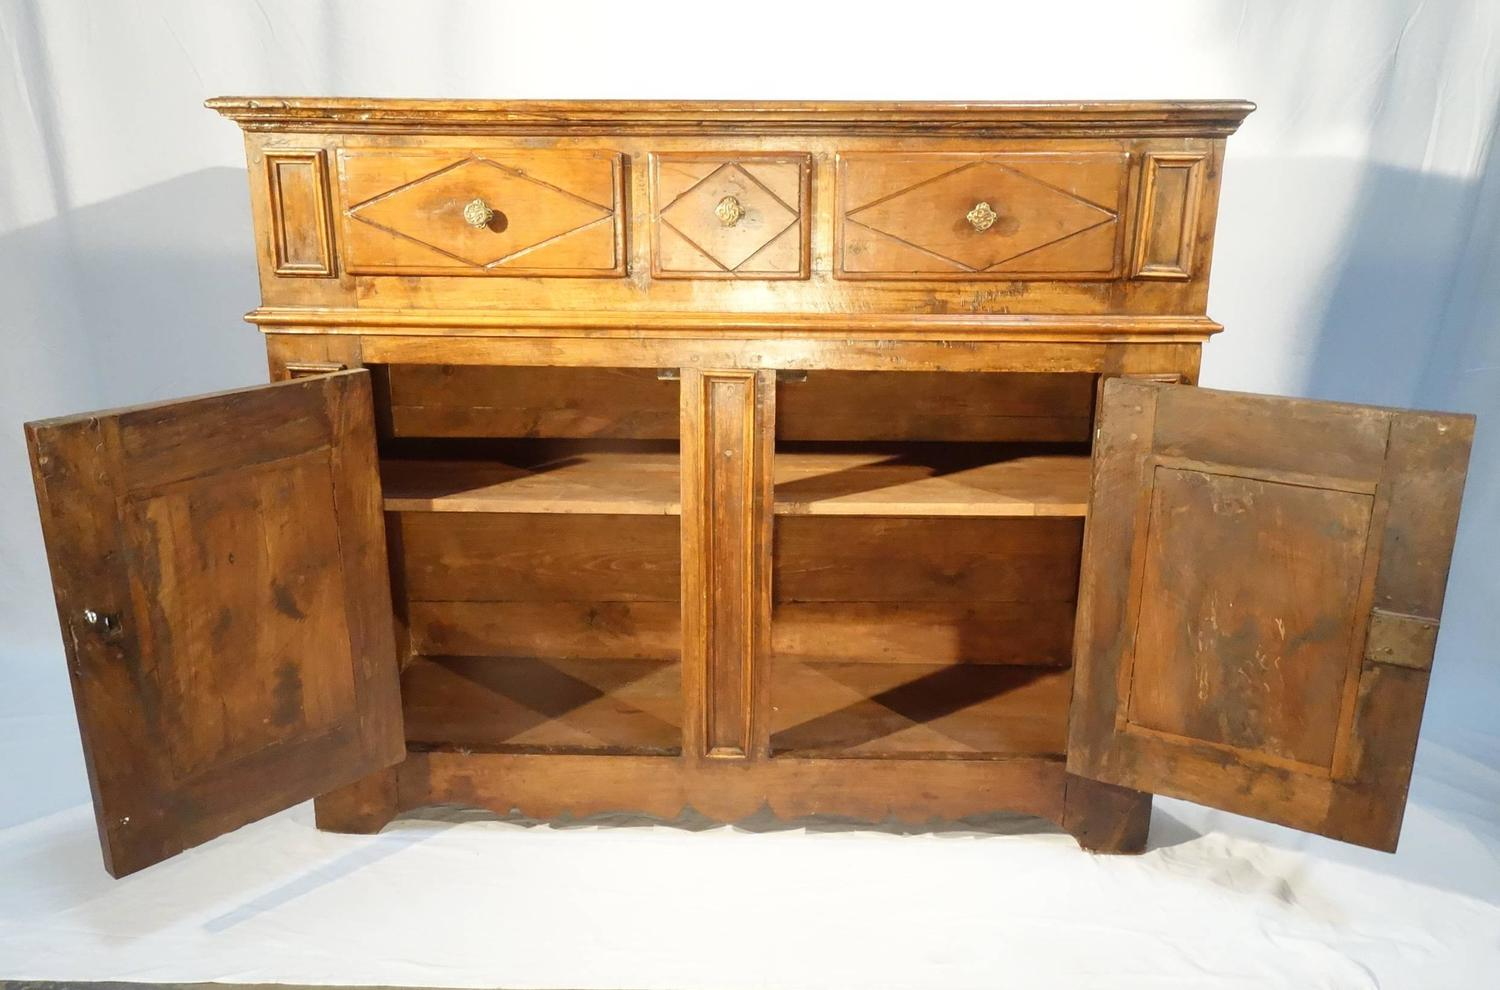 17th Century Style Antique Rustic Italian Walnut Credenza